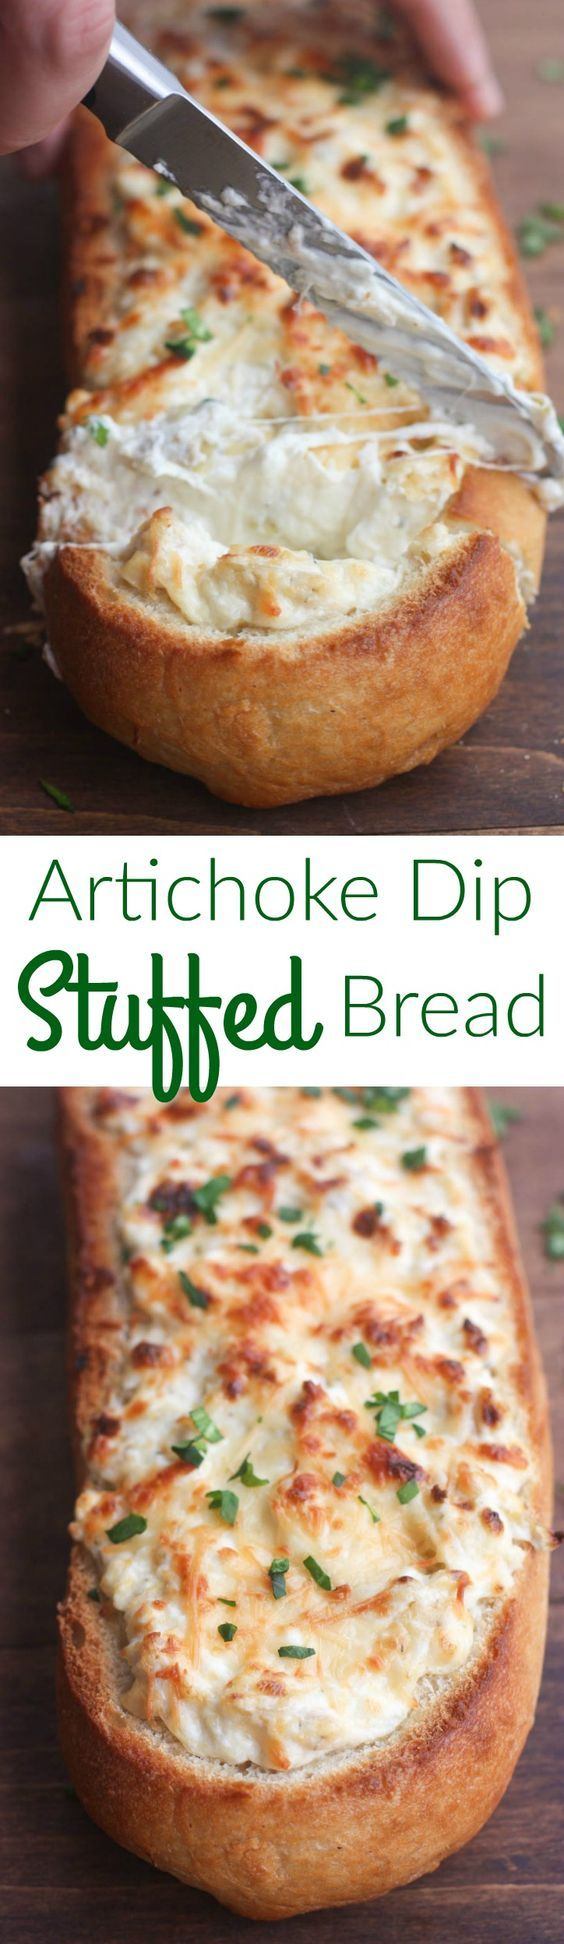 Artichoke Dip Stuffed Bread